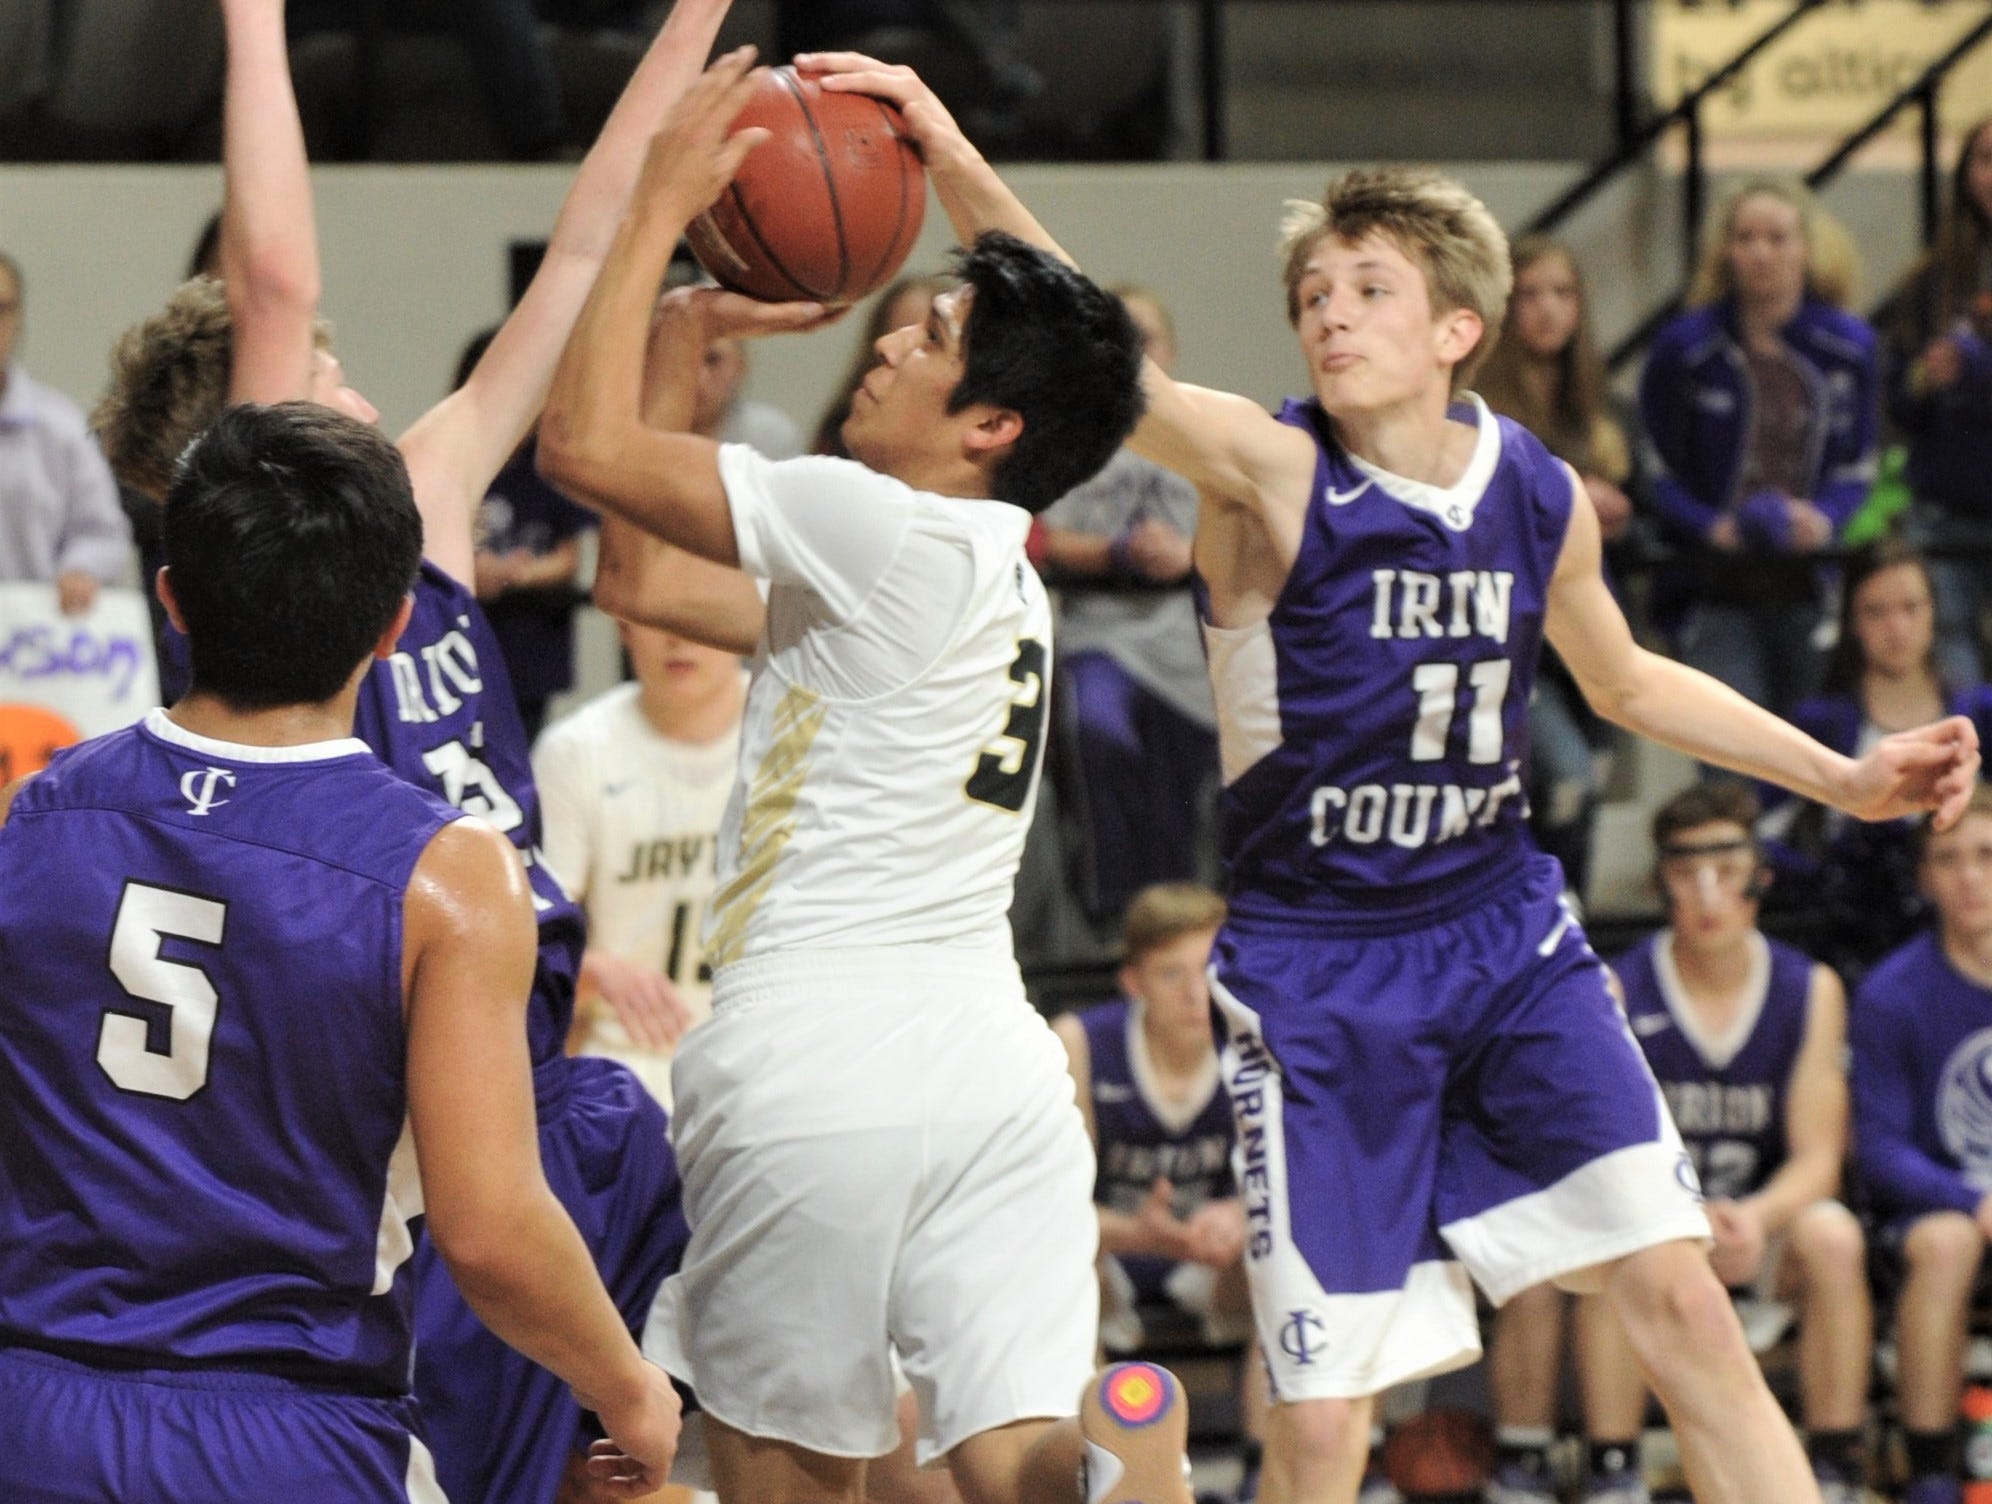 Jayton's Aaron Hernandez, center, drives to the basket as Irion County's Dawson Sparks, right, and another teammate defend. The Jaybirds beat Irion County 47-32 in the Region II-1A championship game Saturday, March 2, 2019, at Abilene Christian's Moody Coliseum.